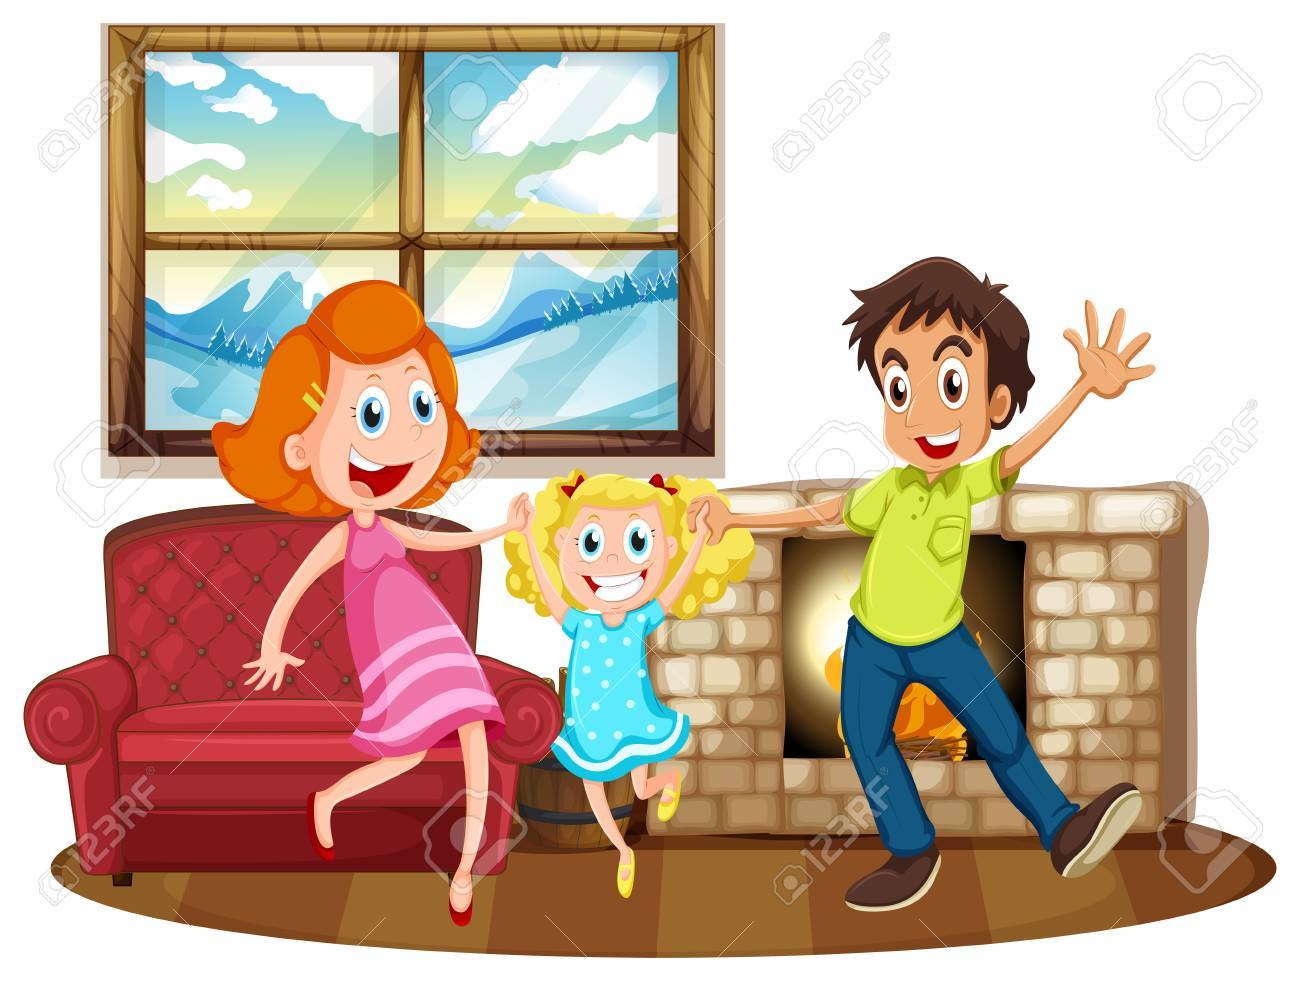 Happy Family In The Living Room Illustration Stock Vector